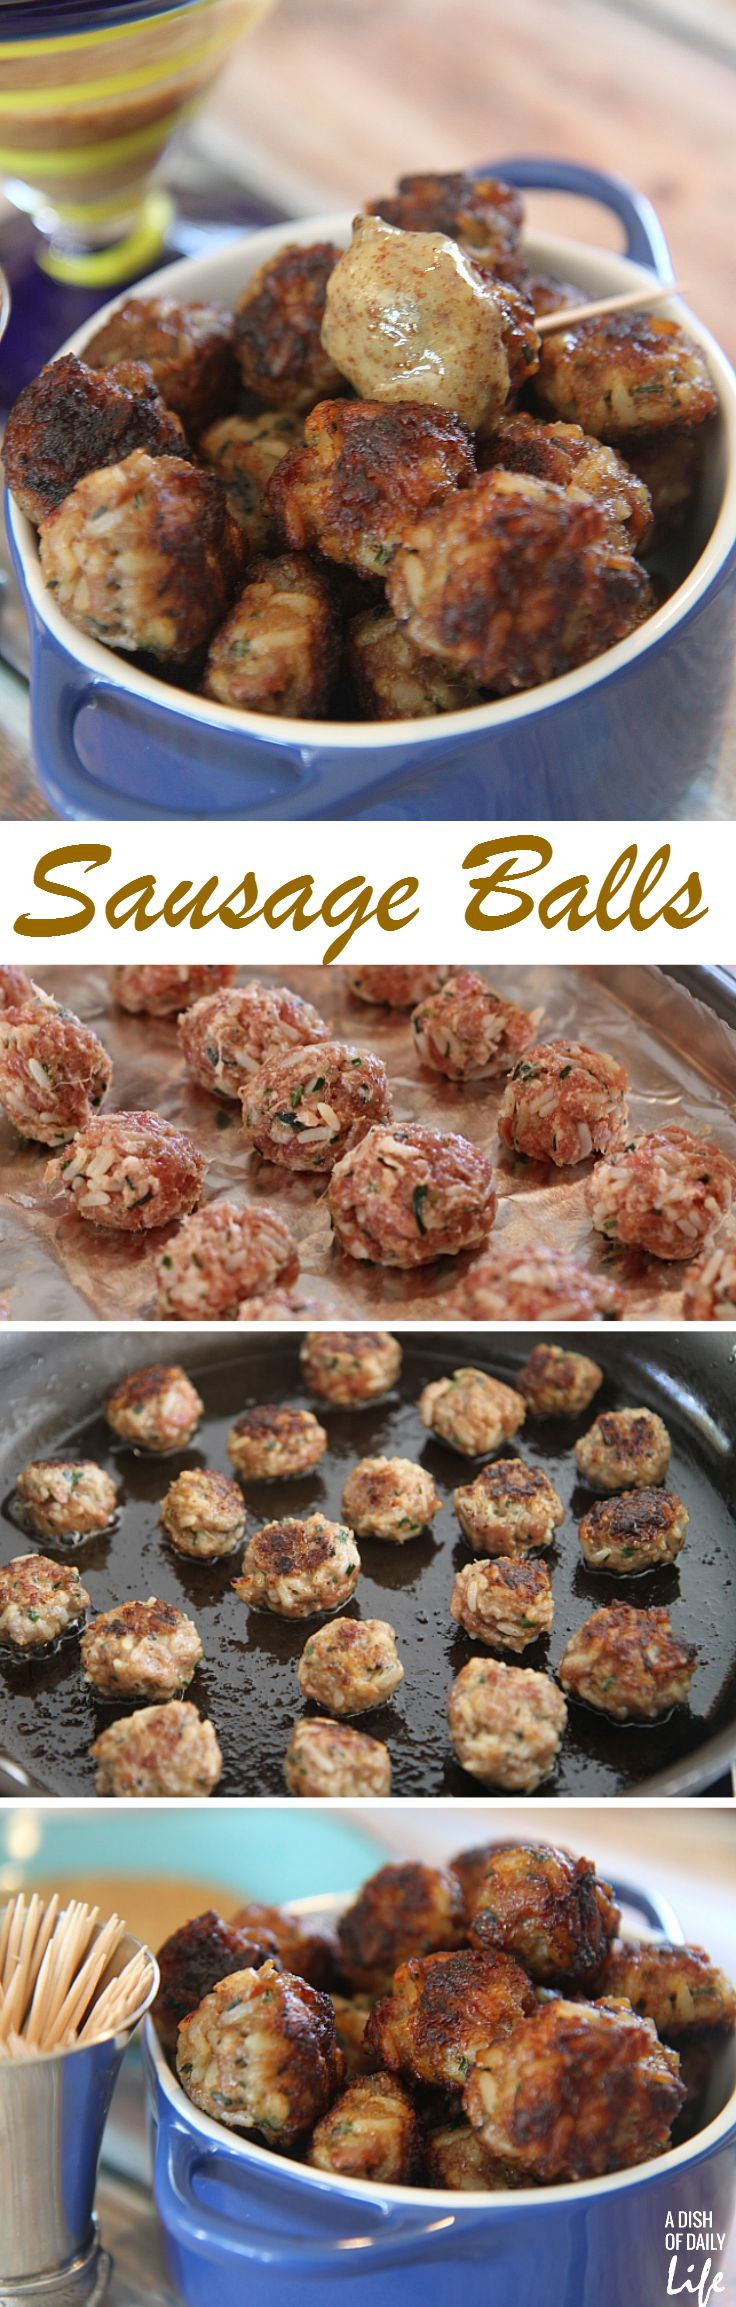 Sausage Balls...this old family favorite is a fun appetizer recipe for tailgate season!